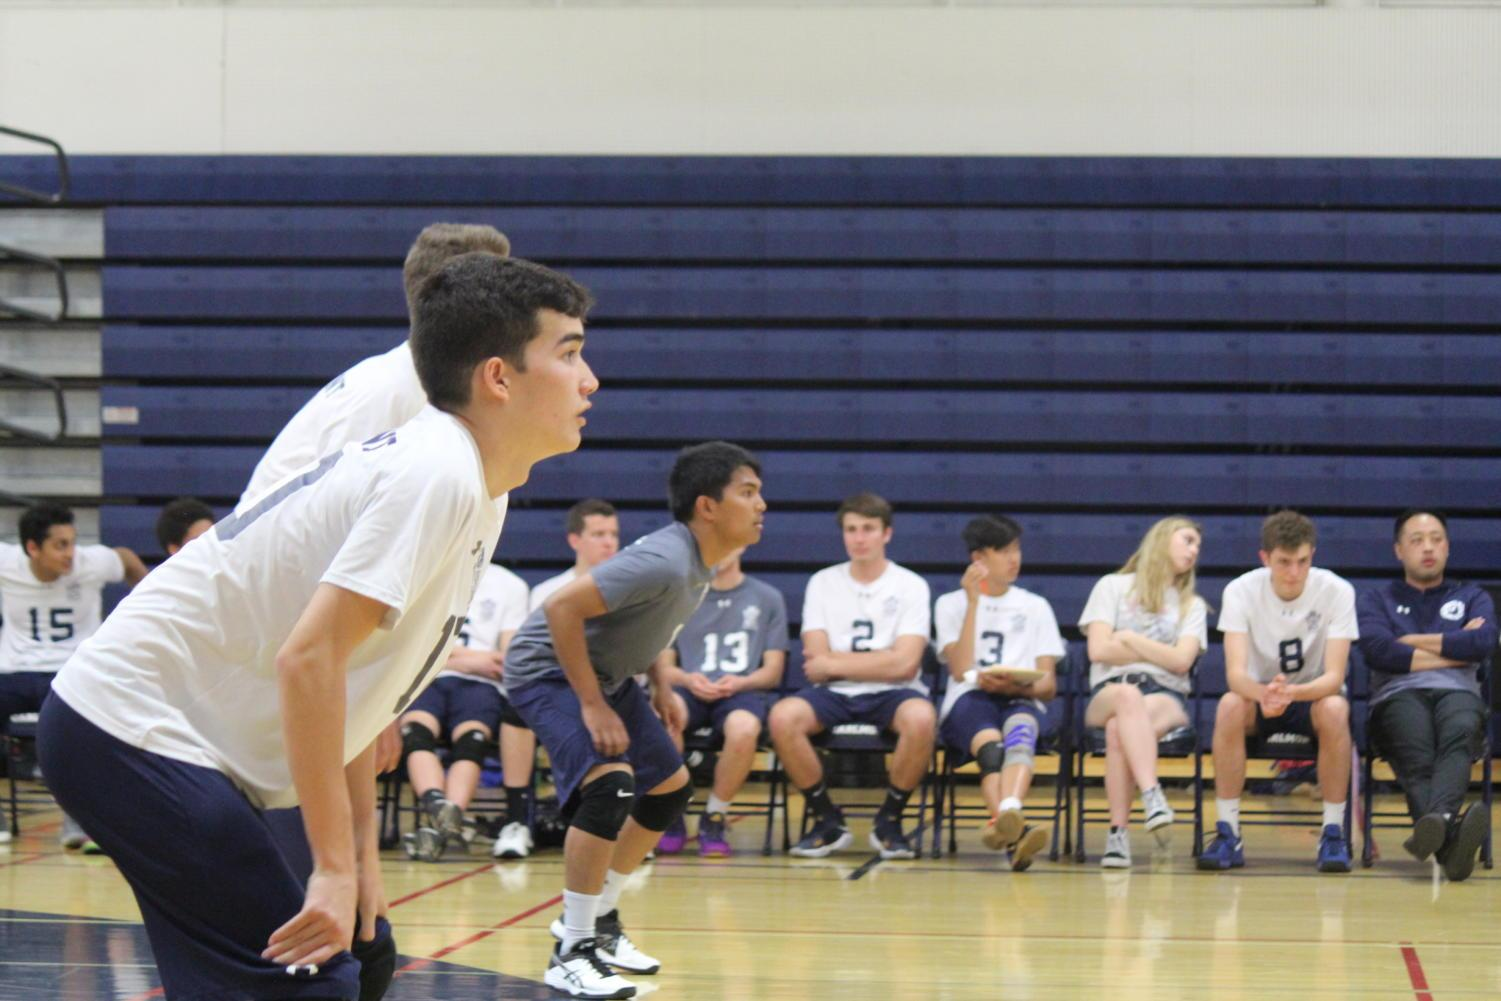 Juniors+Ezekiel+Licudine+and+Trey+Chock+get+ready+for+an+incoming+serve.